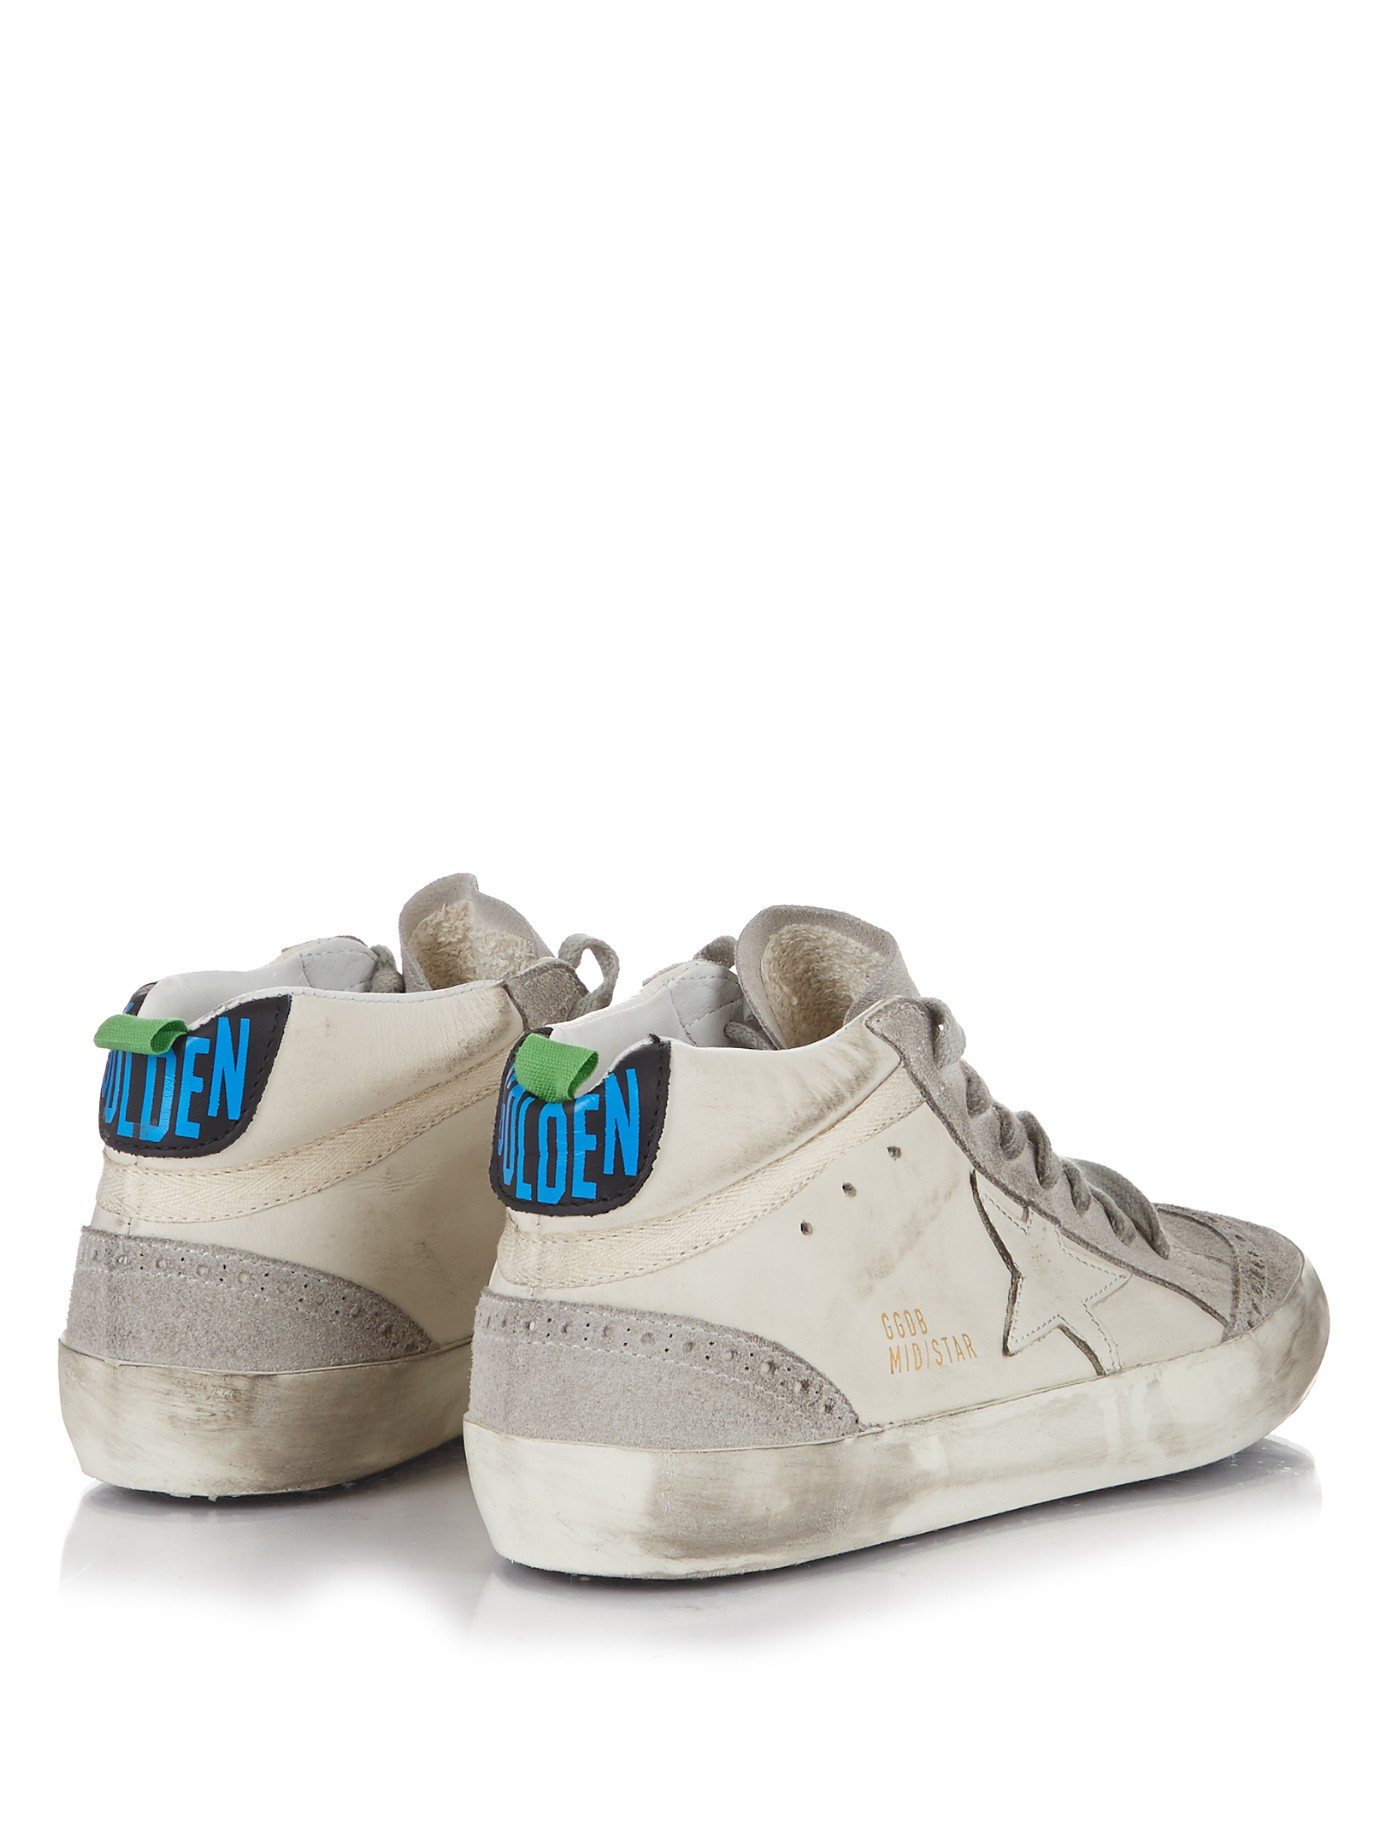 Golden Goose Deluxe Brand Mid Star Leather And Suede Trainers in White